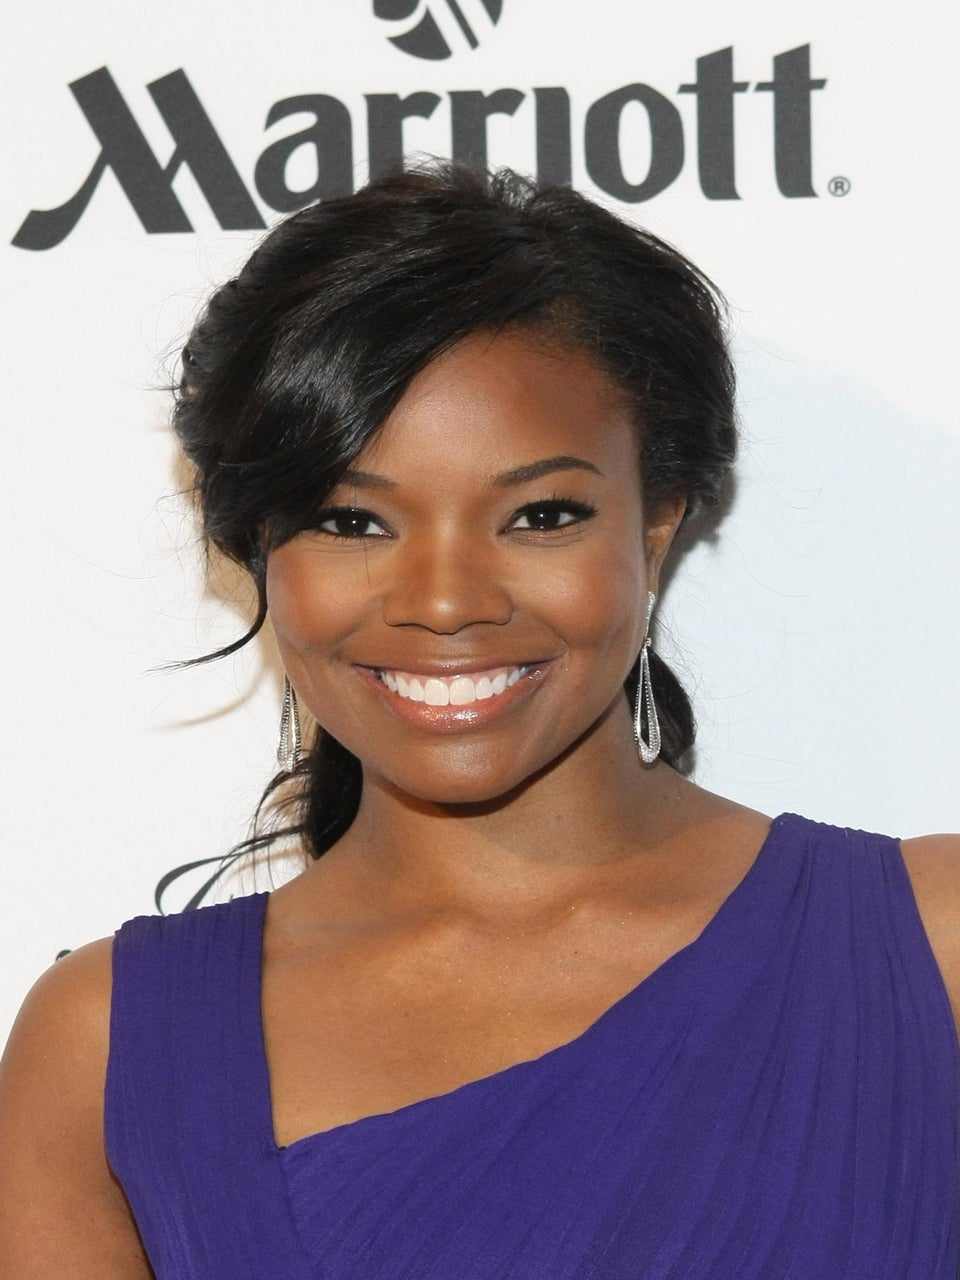 Relive Our Google+ Hangout with Gabrielle Union Now!